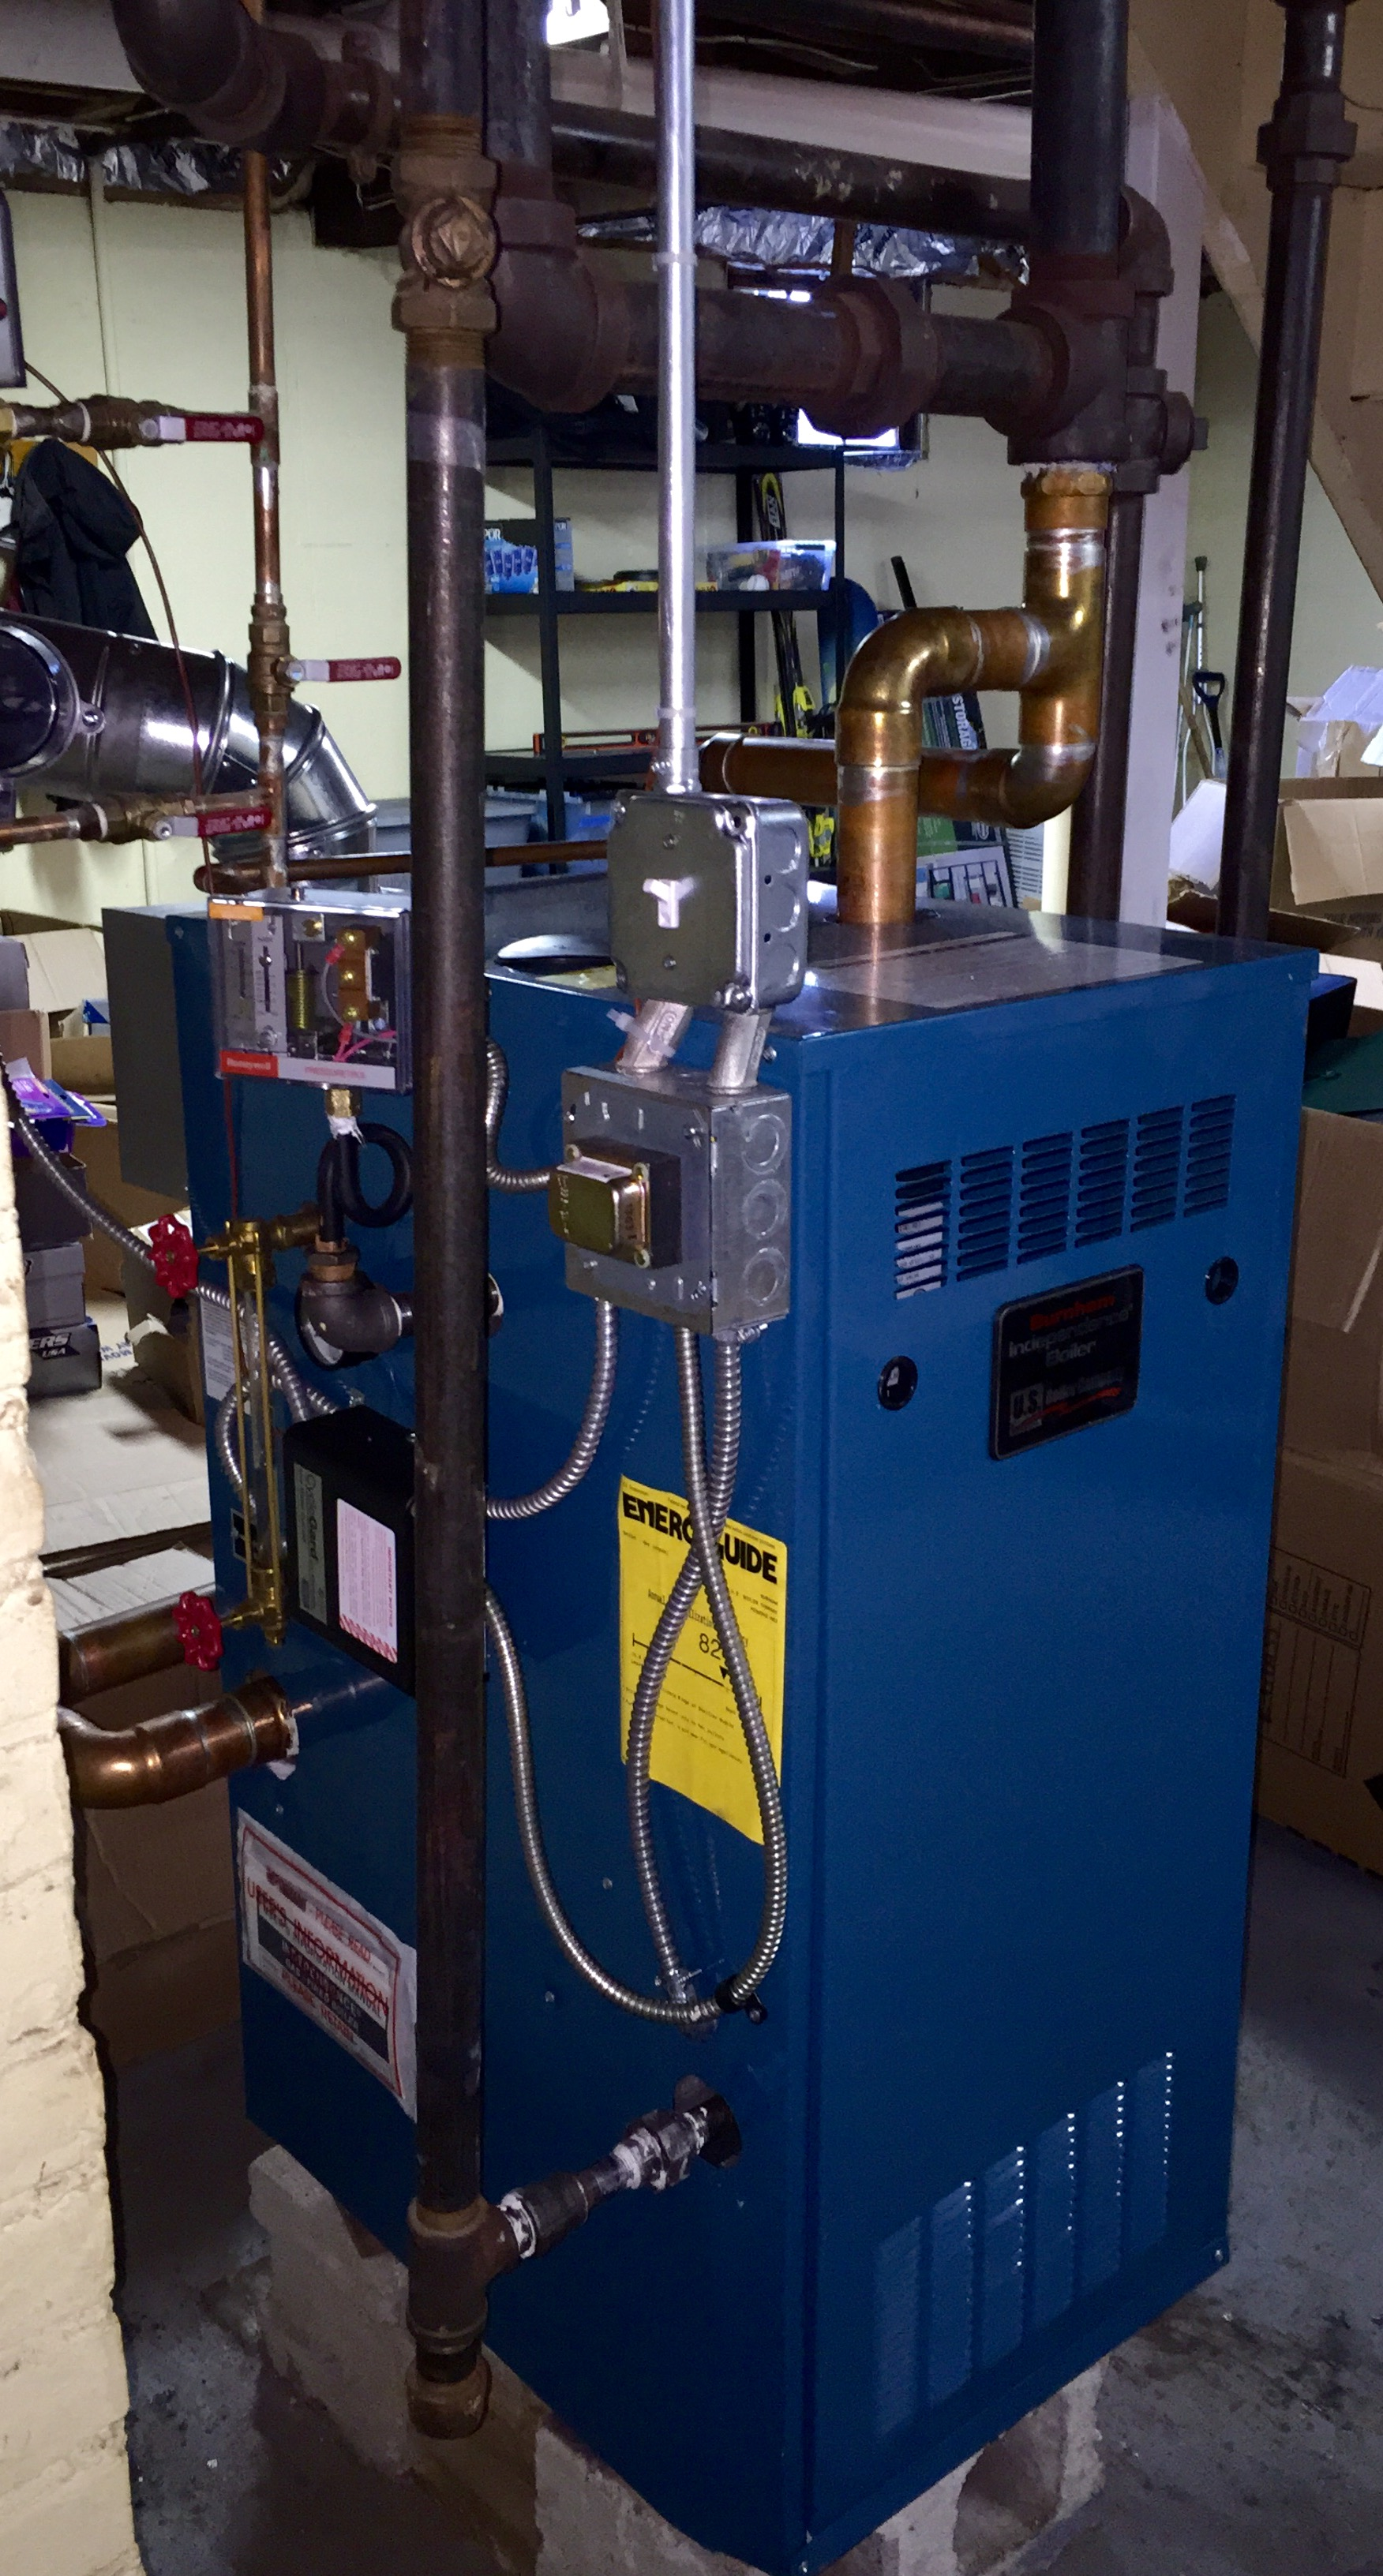 Is My New Burnham Independence Steam Boiler Not Running Properly   U2014 Heating Help  The Wall